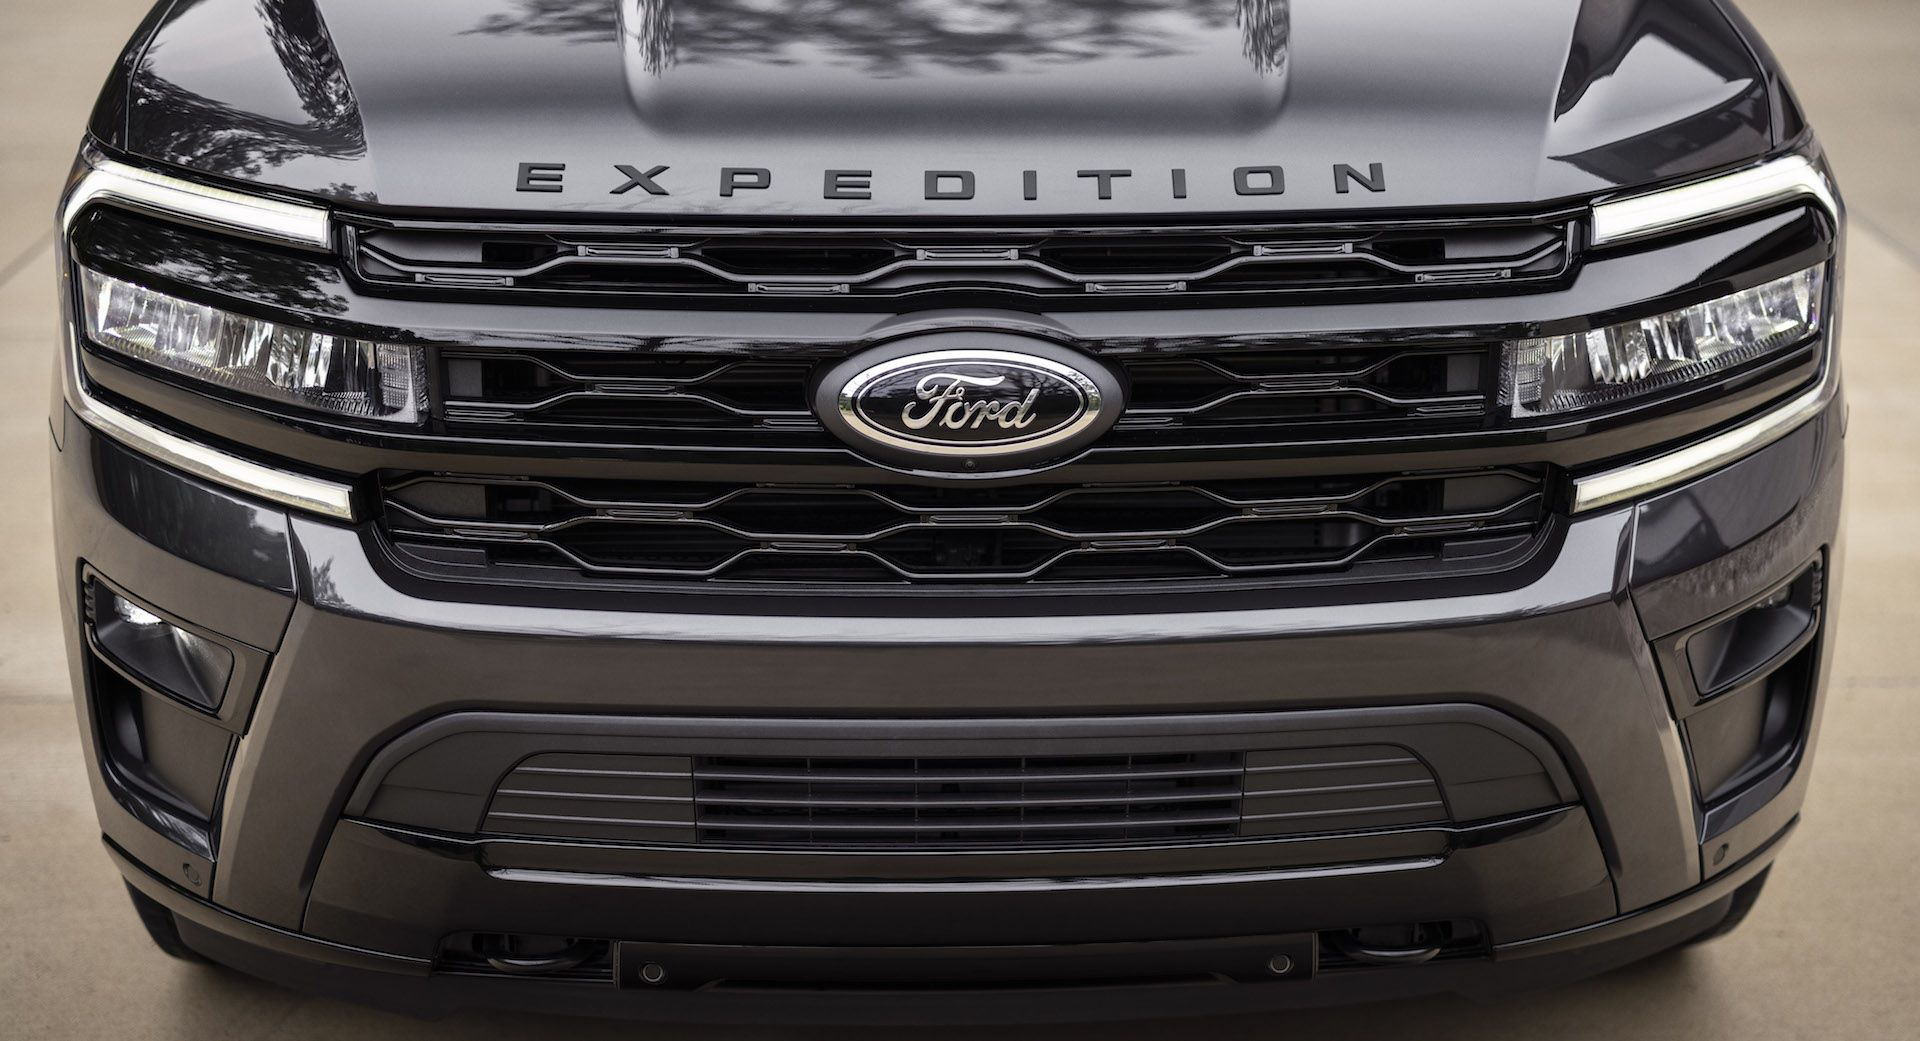 2022-Ford-Expedition-Stealth-00002-1